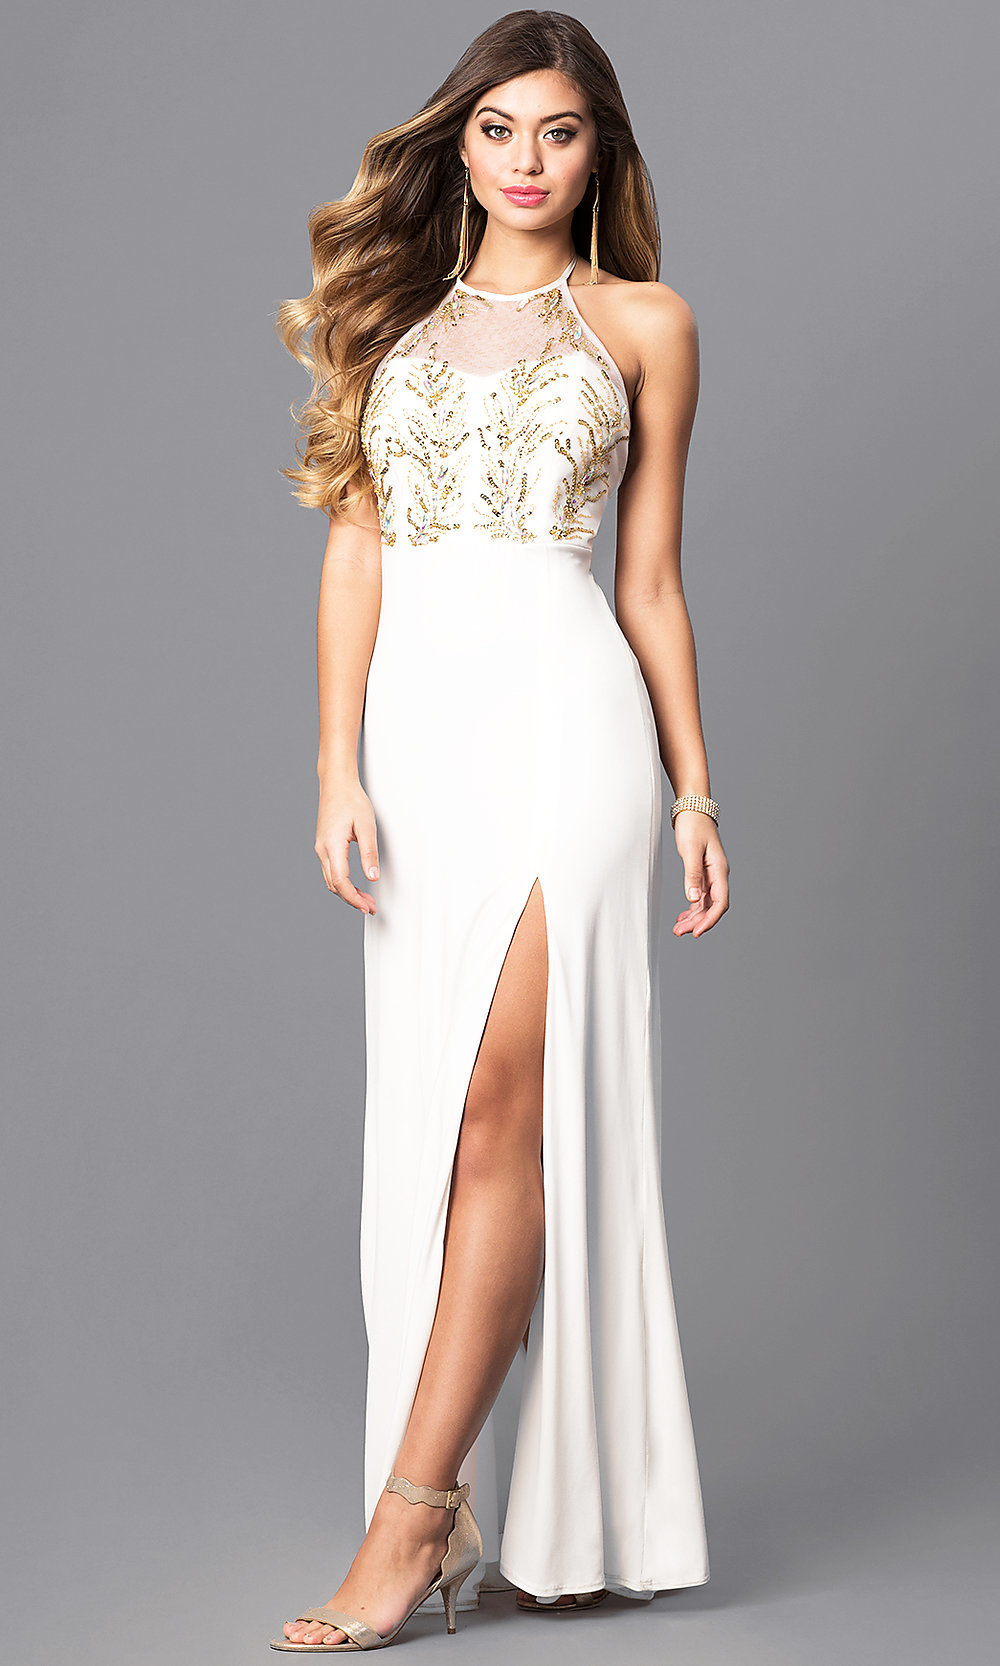 Gold Sequin Halter Ivory White Prom Dress - PromGirl